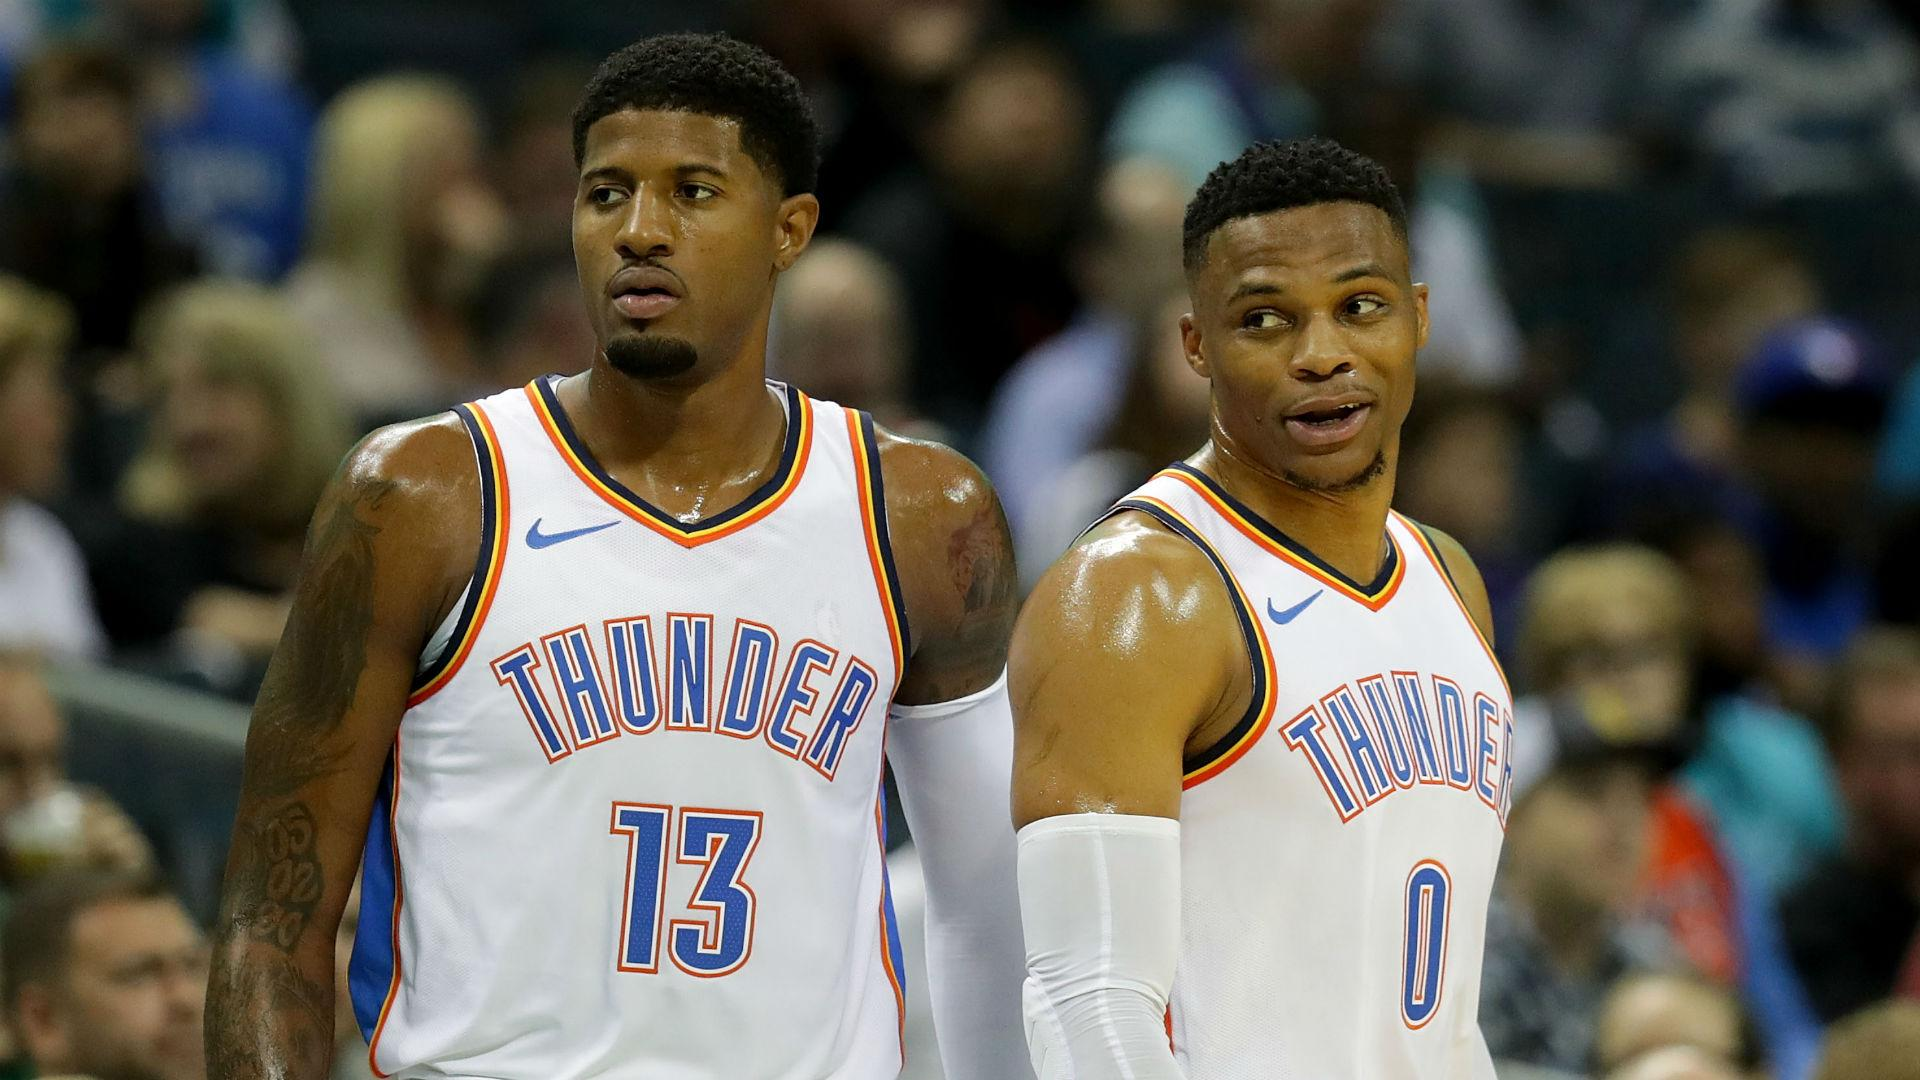 Thunder's first-round draft picks after trading Russell Westbrook and Paul George